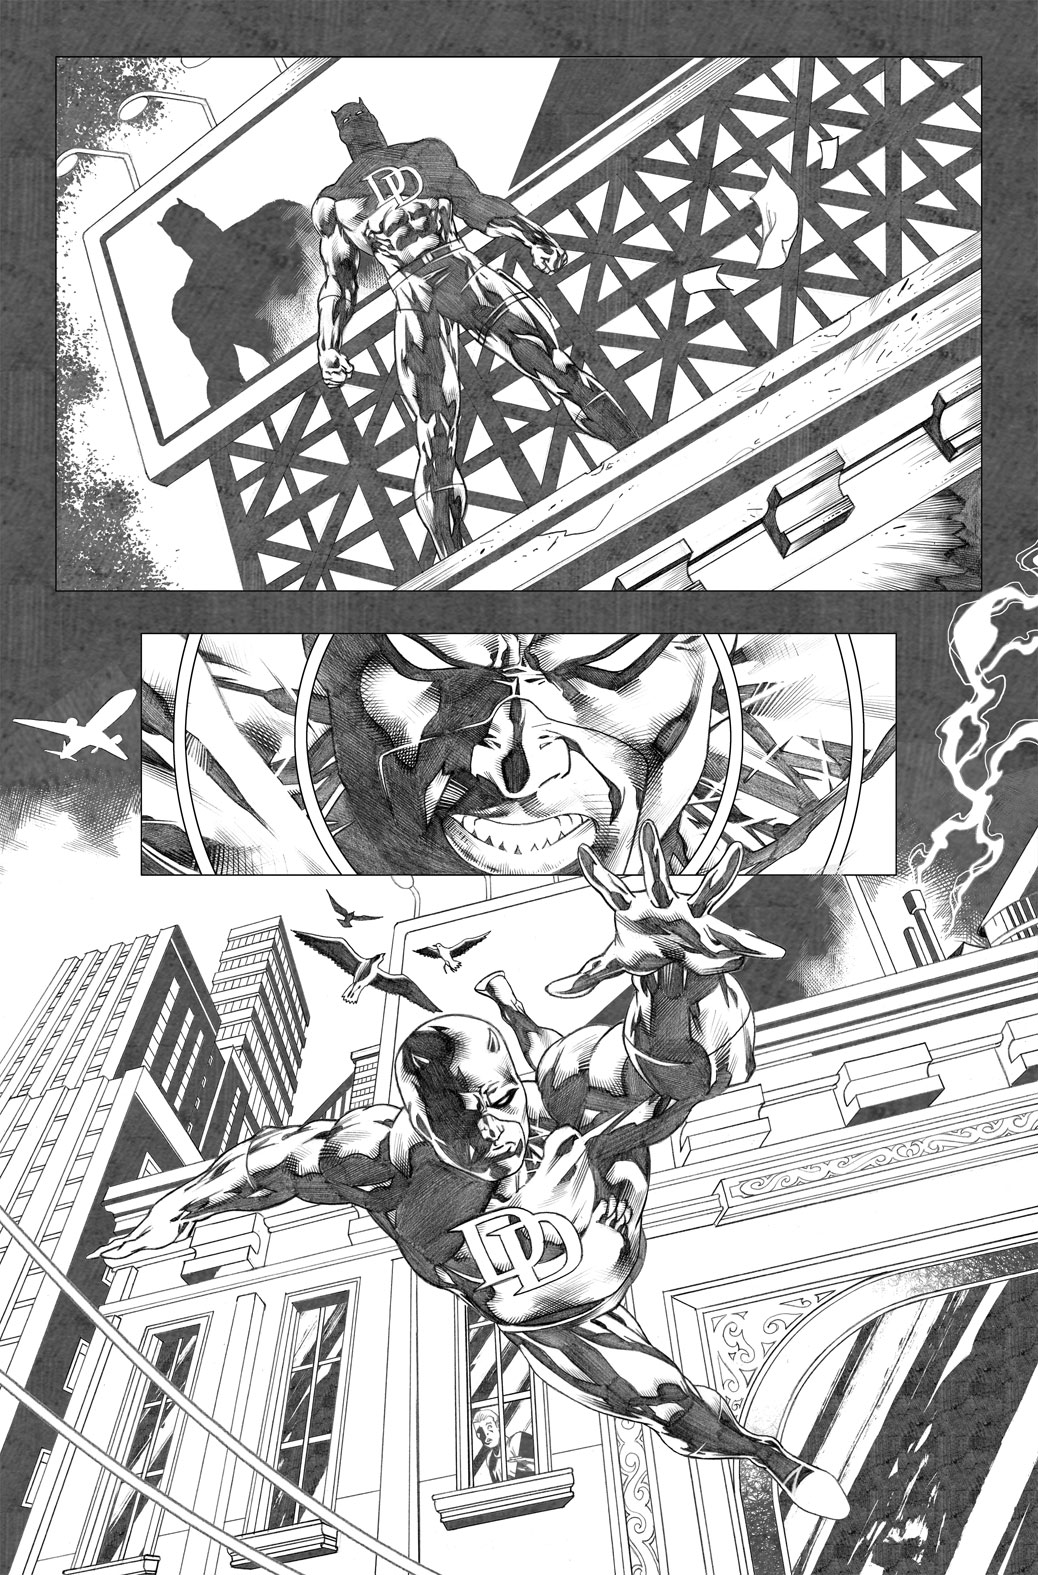 Daredevil_mueller_page_01_pencil